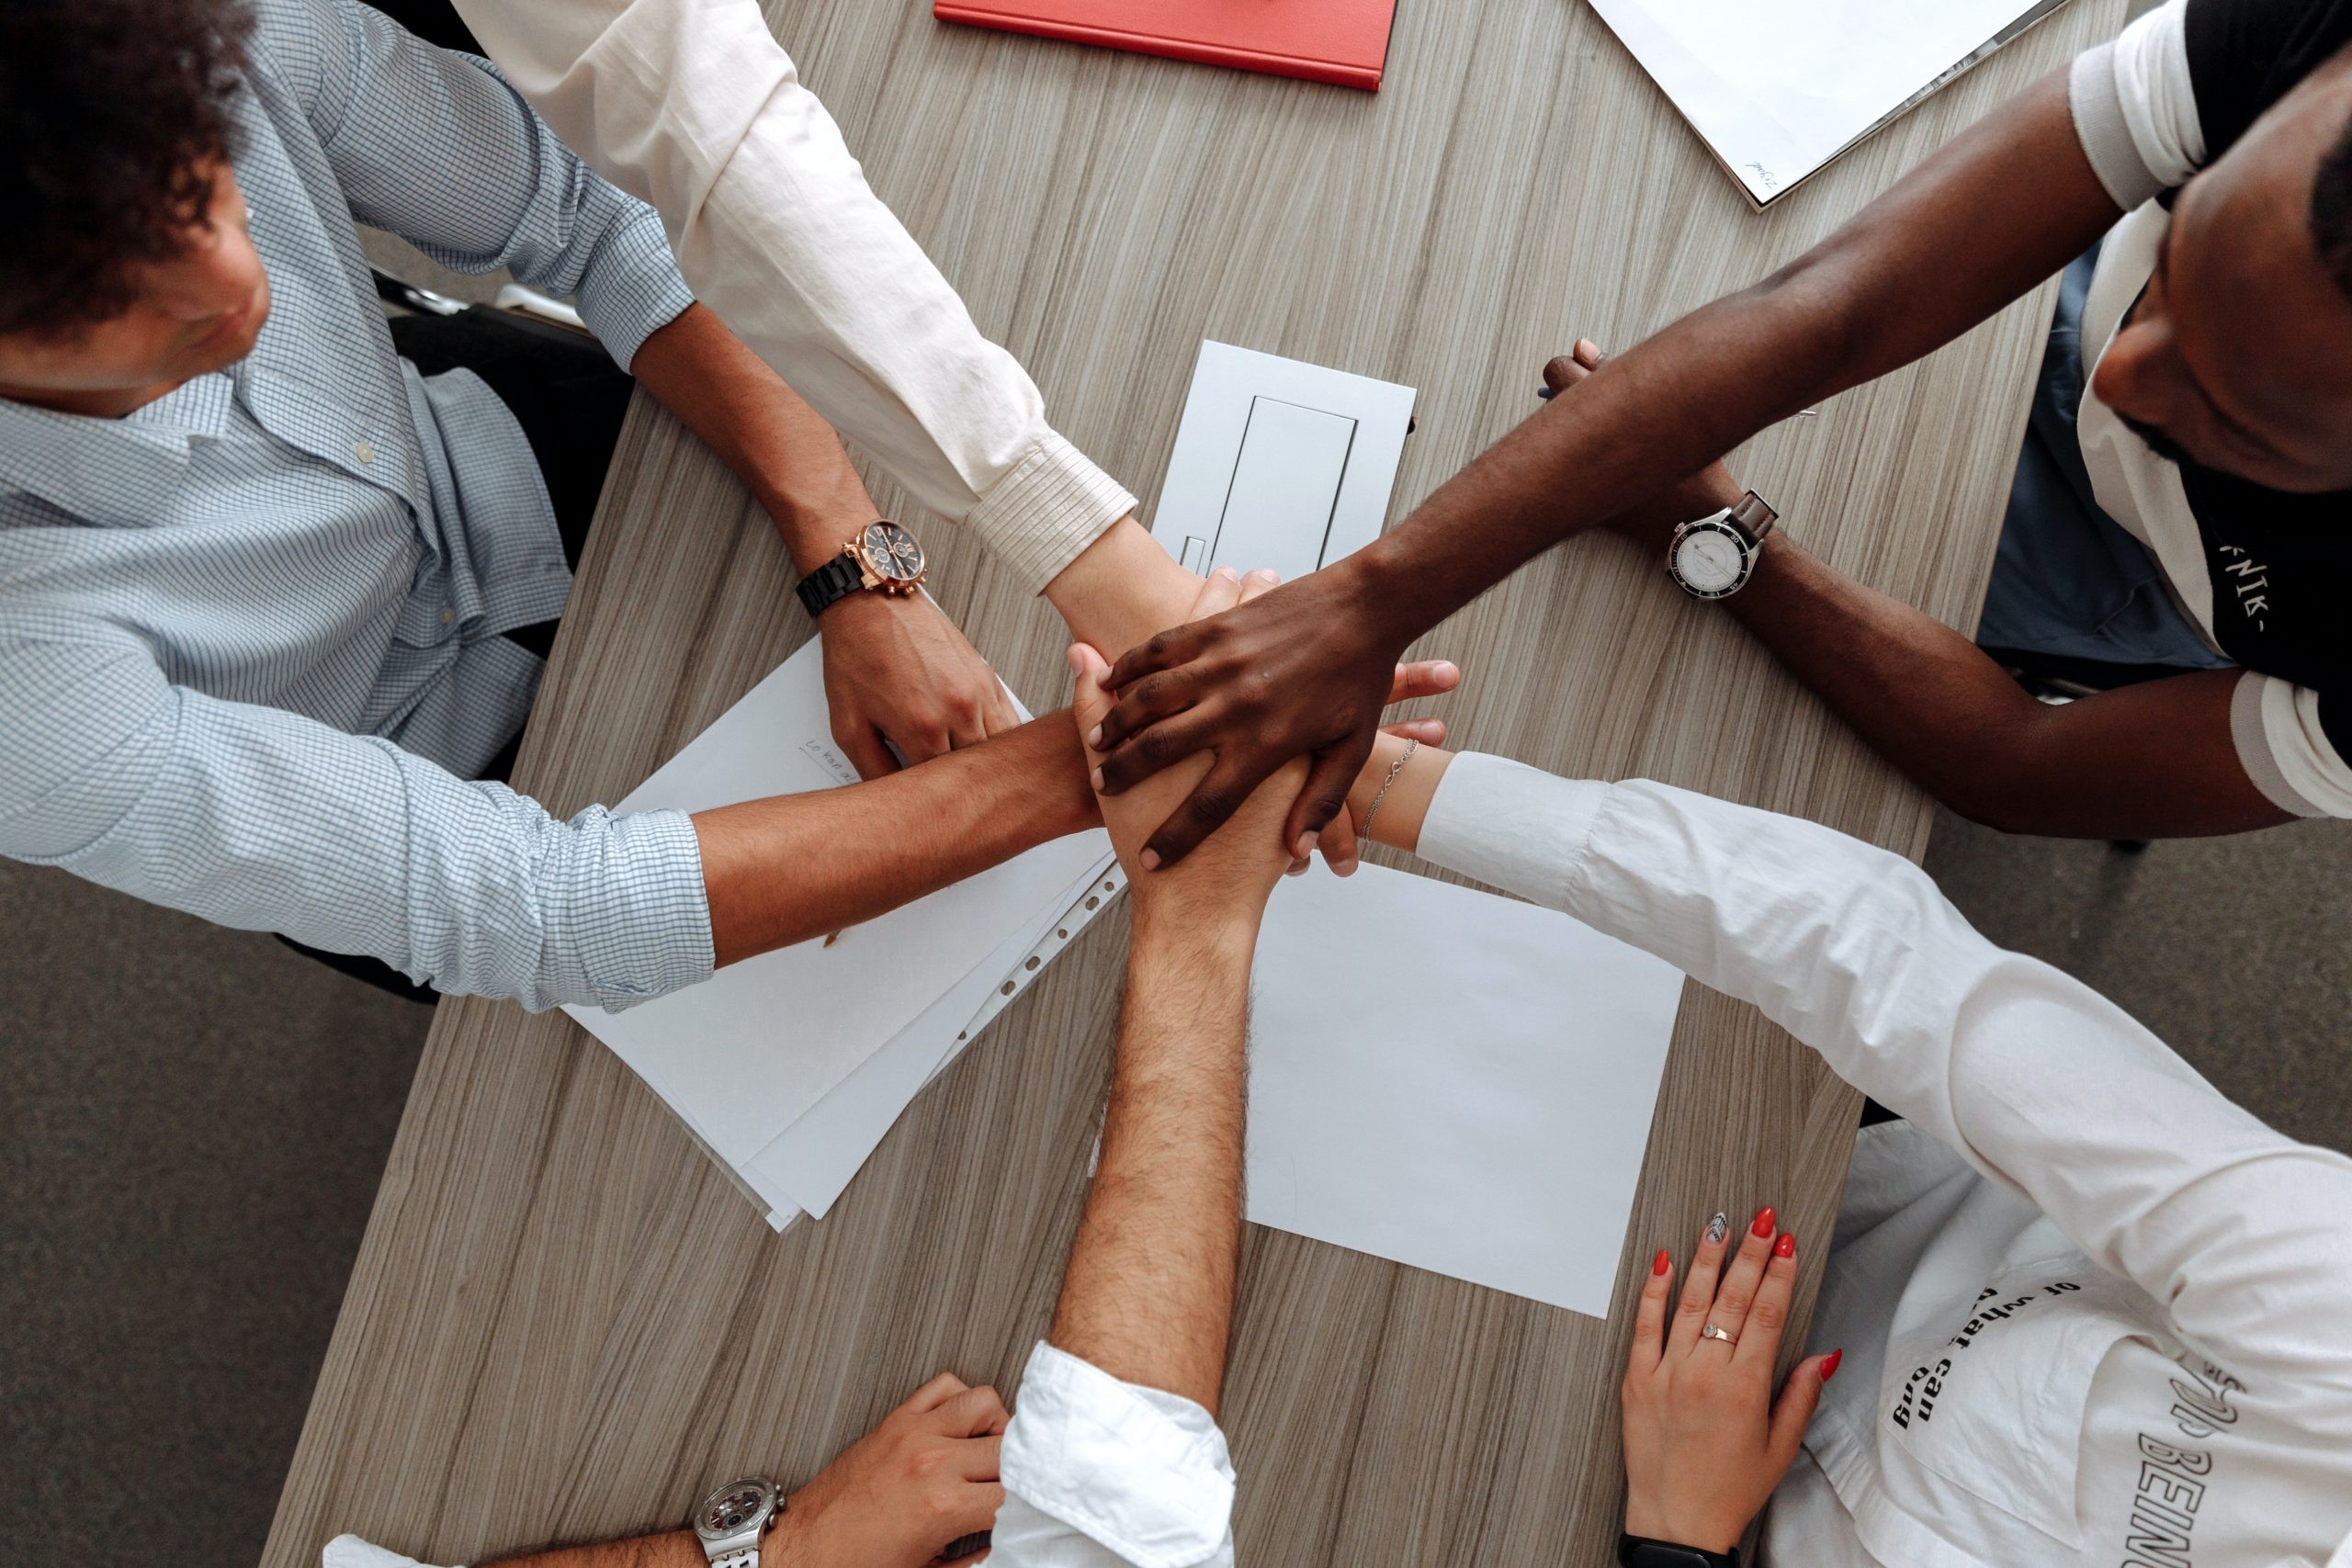 Top 4 Reasons Why Mentorship In A Work Environment Is Impactful